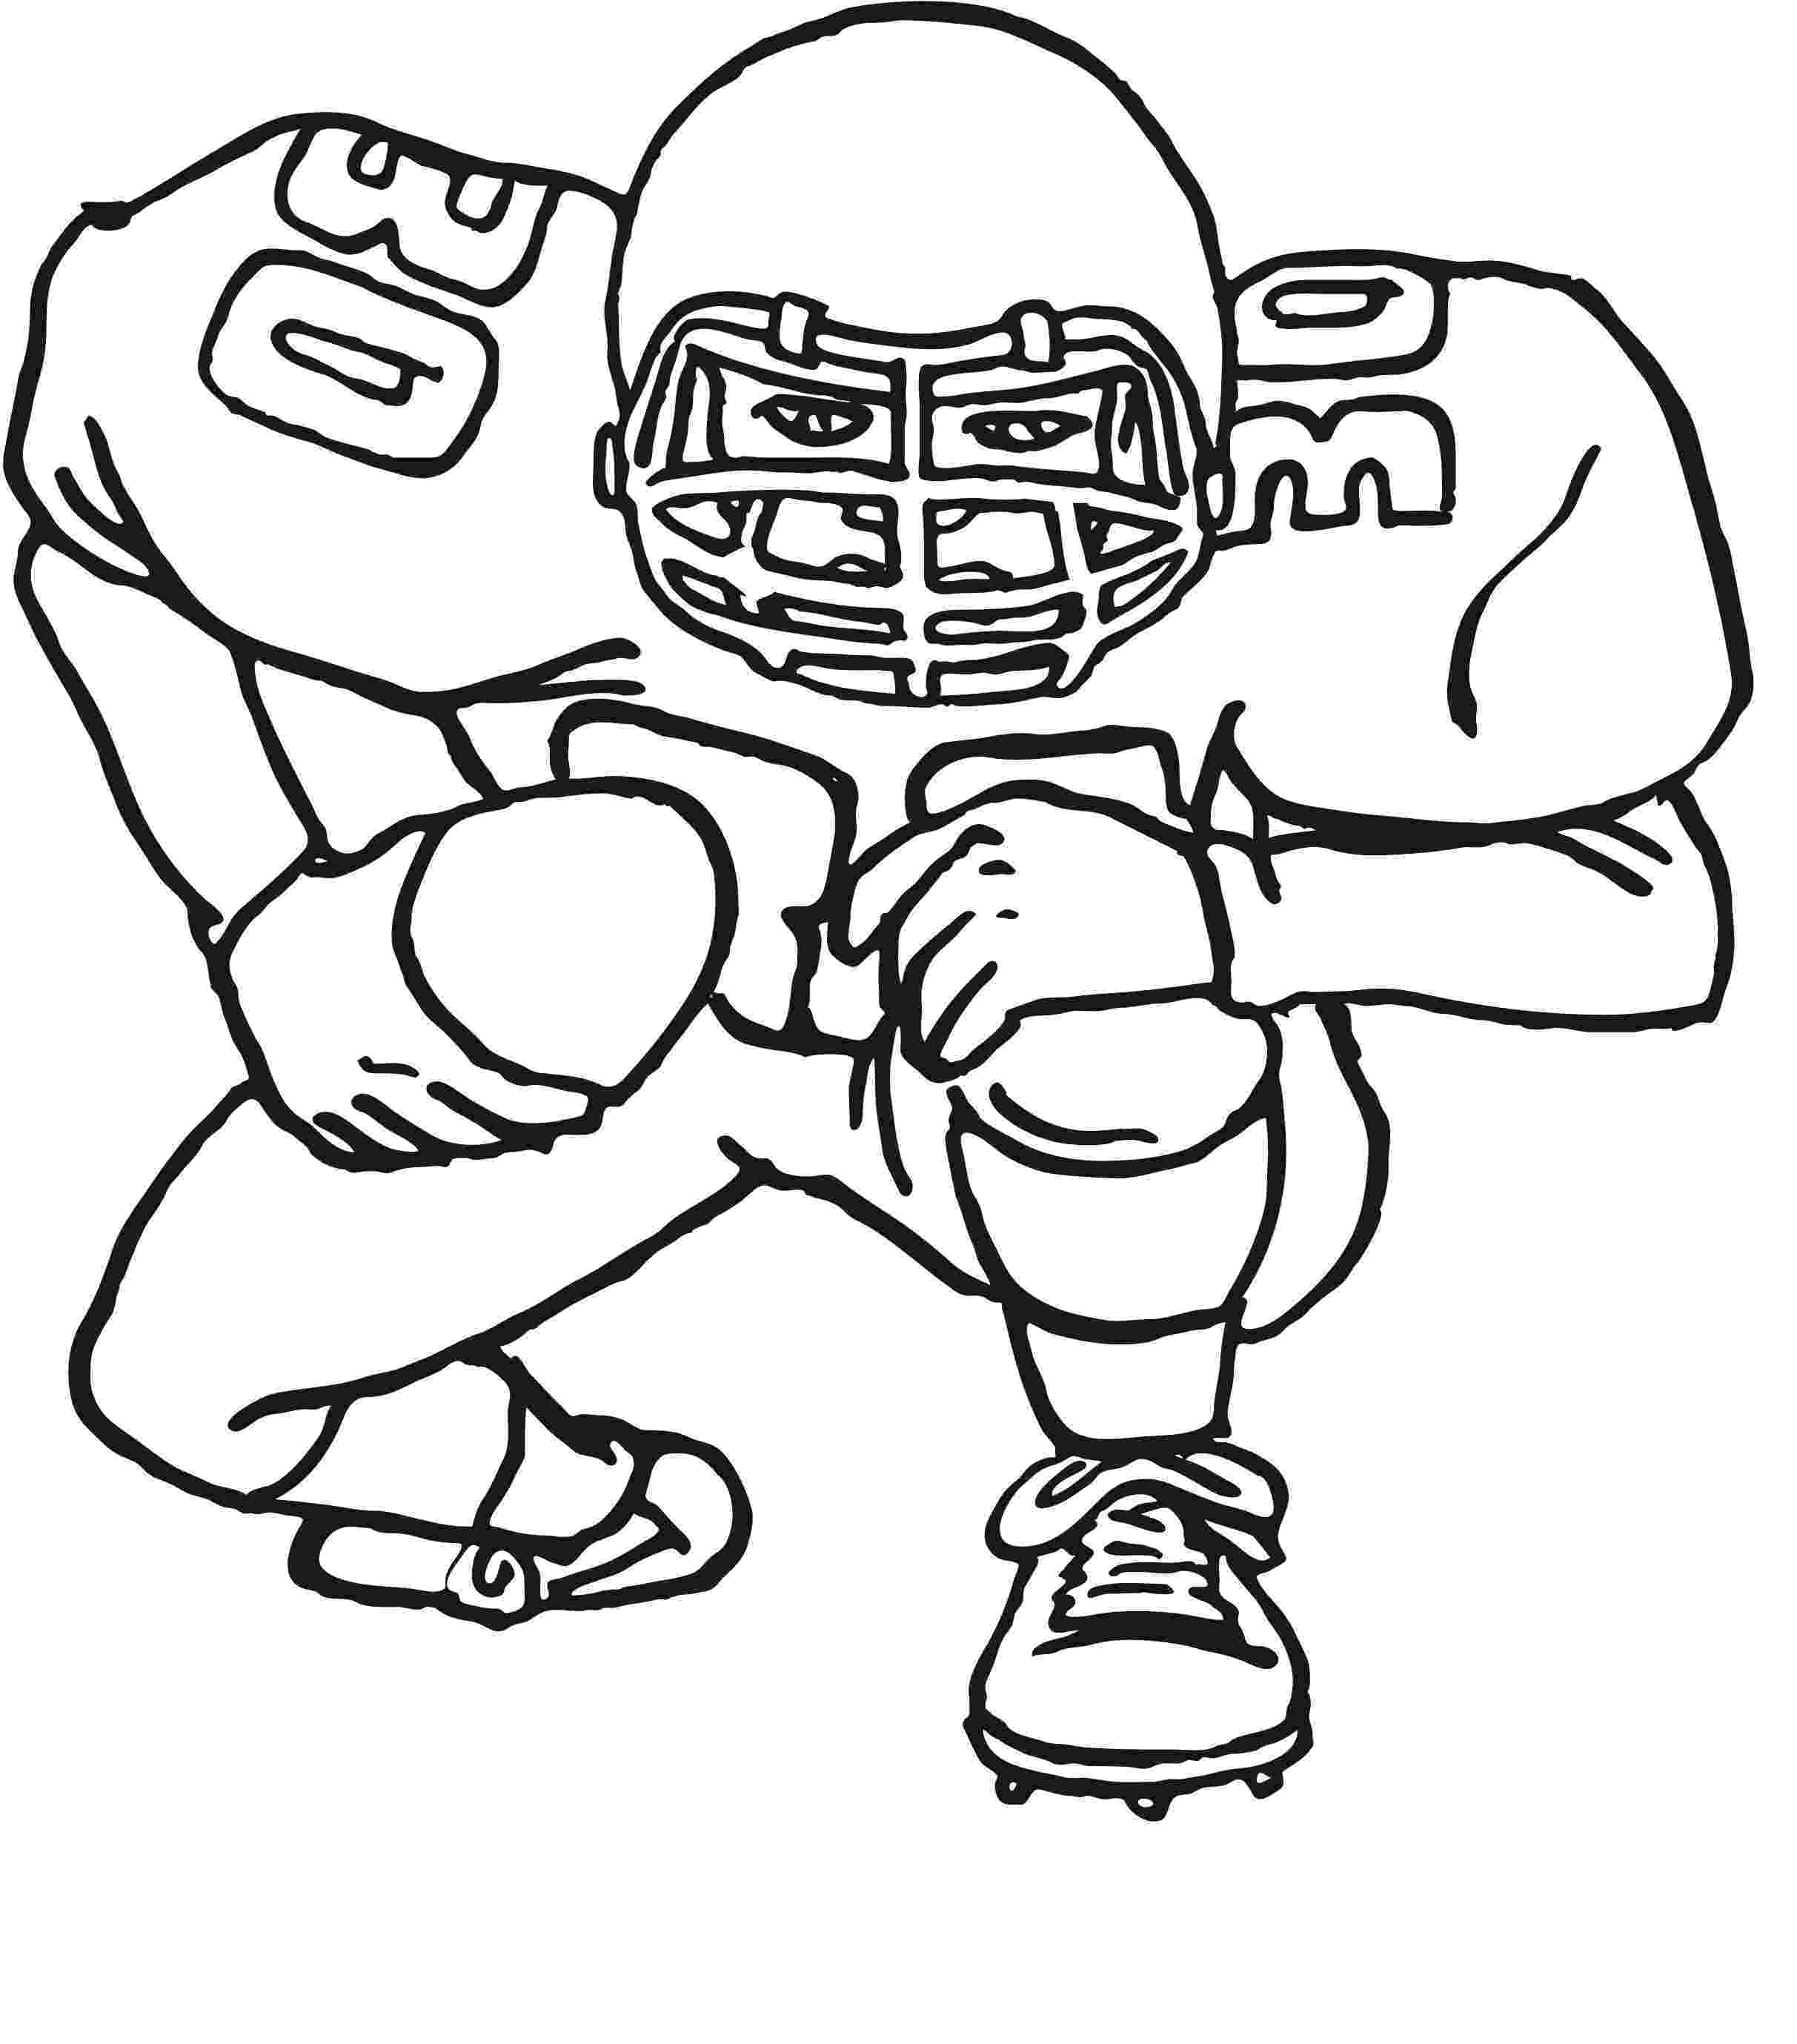 football colouring sheet american football players kids coloring pages choosboox sheet football colouring